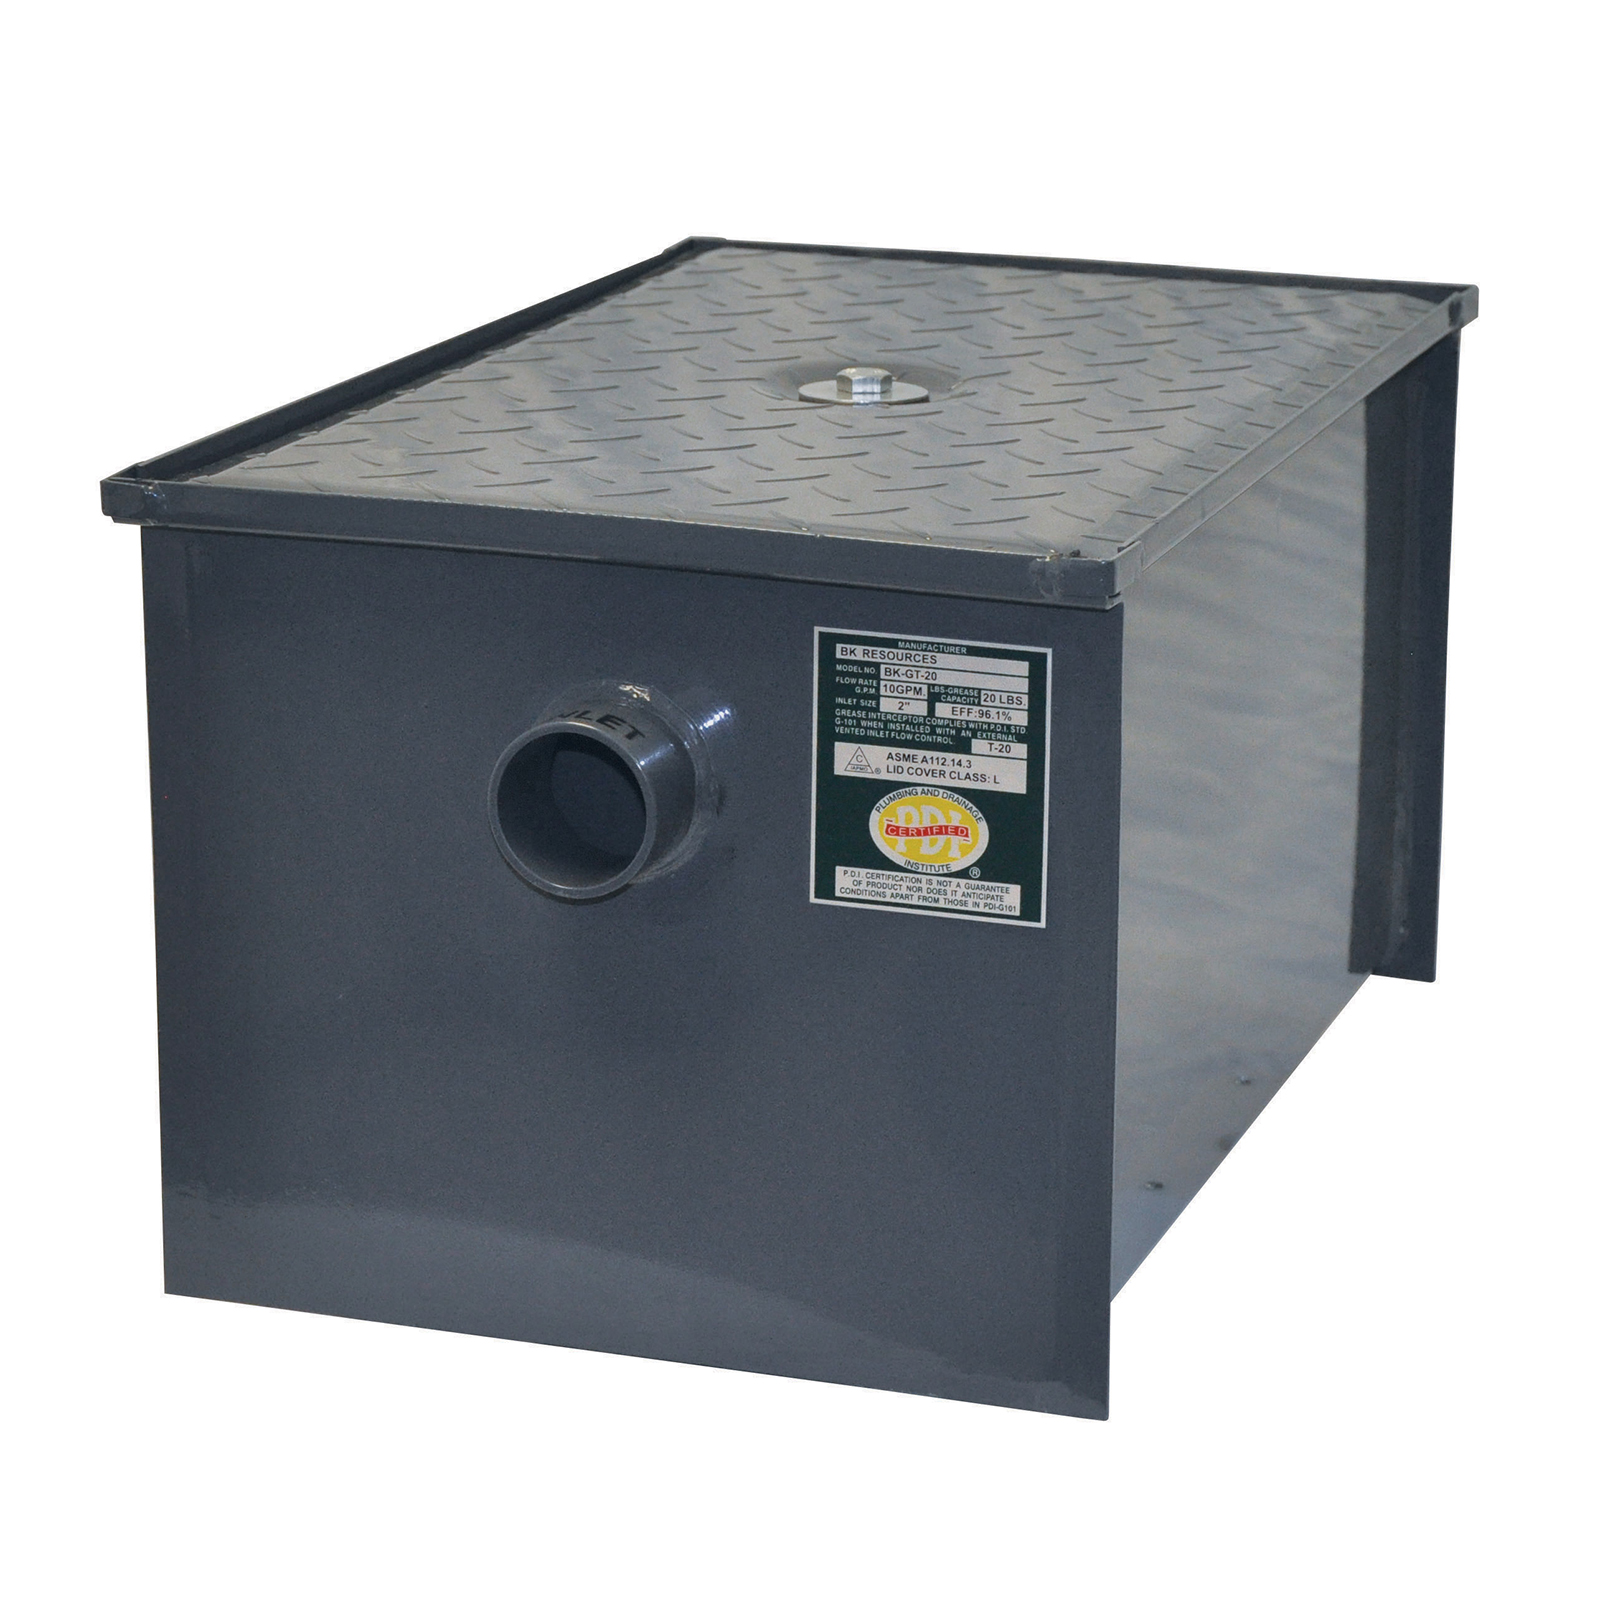 BK Resources BK-GT-50 grease trap